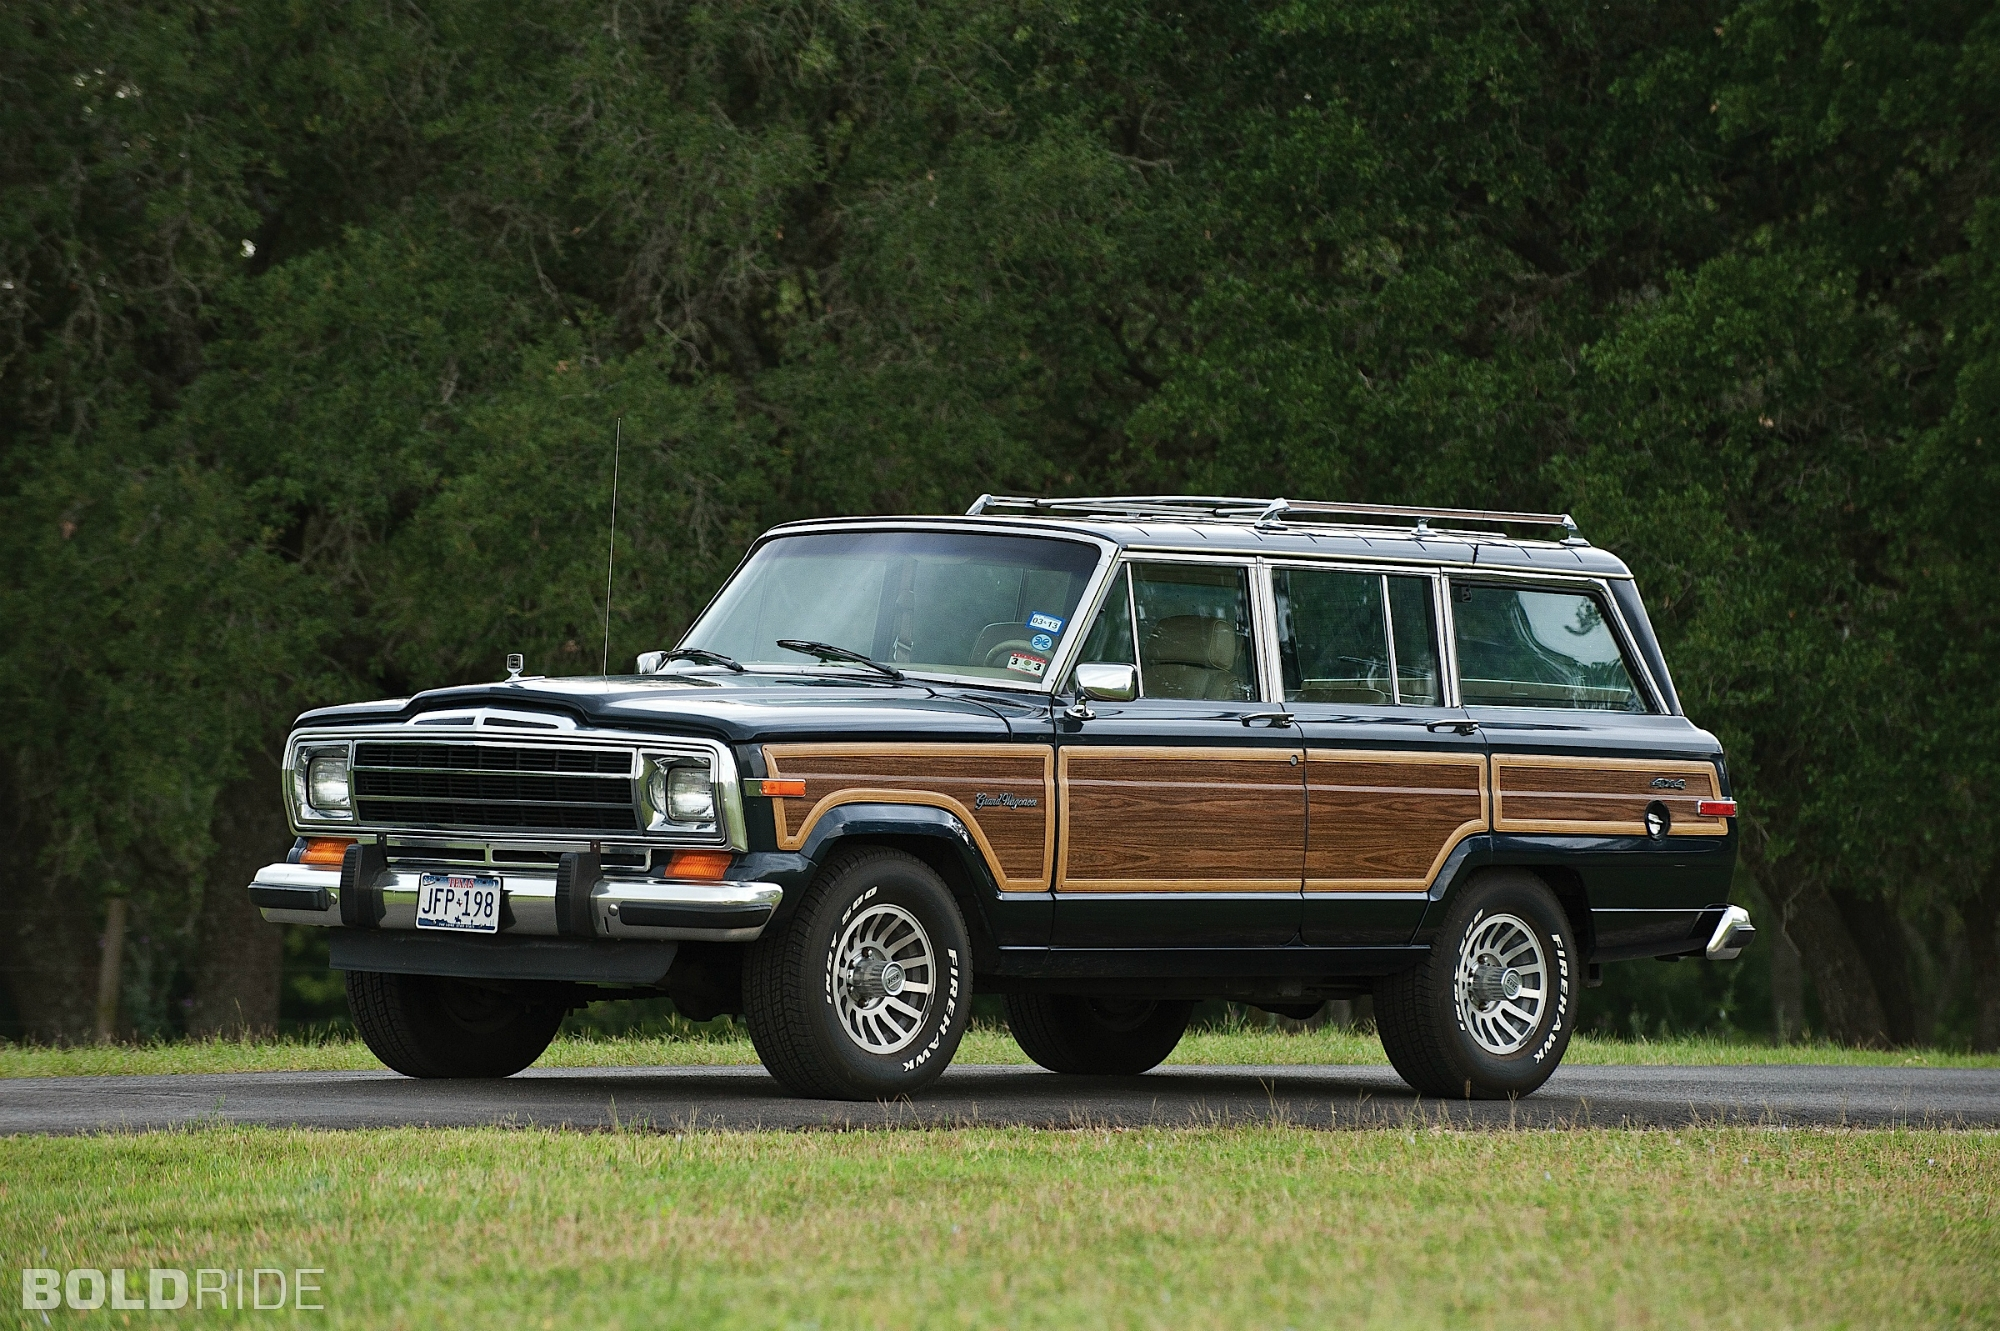 1990 jeep wagoneer information and photos zombiedrive. Black Bedroom Furniture Sets. Home Design Ideas